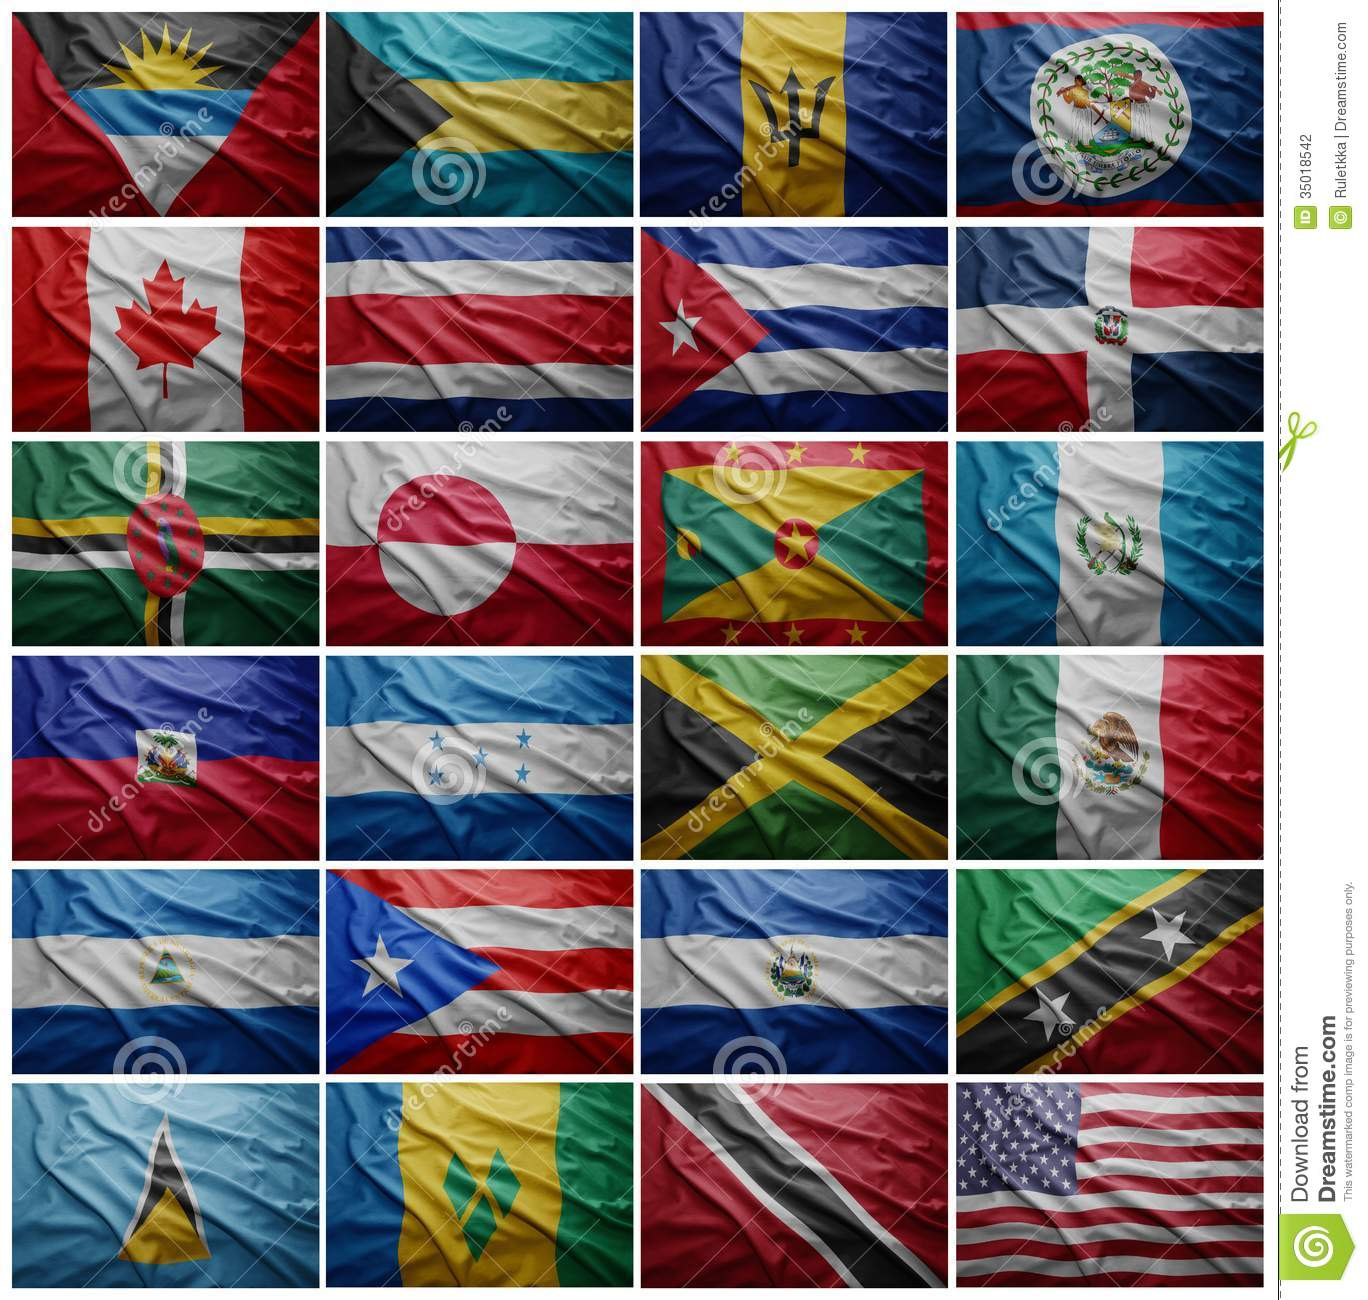 jamaica flag map with Stock Photography Flags All North American Countries Collage Waving Colorful Withouh Panama Image35018542 on Cuba further Digest Participating Countries in addition Imagen De Archivo Correspondencia Y Ciudades De Italia Image15975421 furthermore Rastafarianism Jesus And The Bible Ss also Page4.